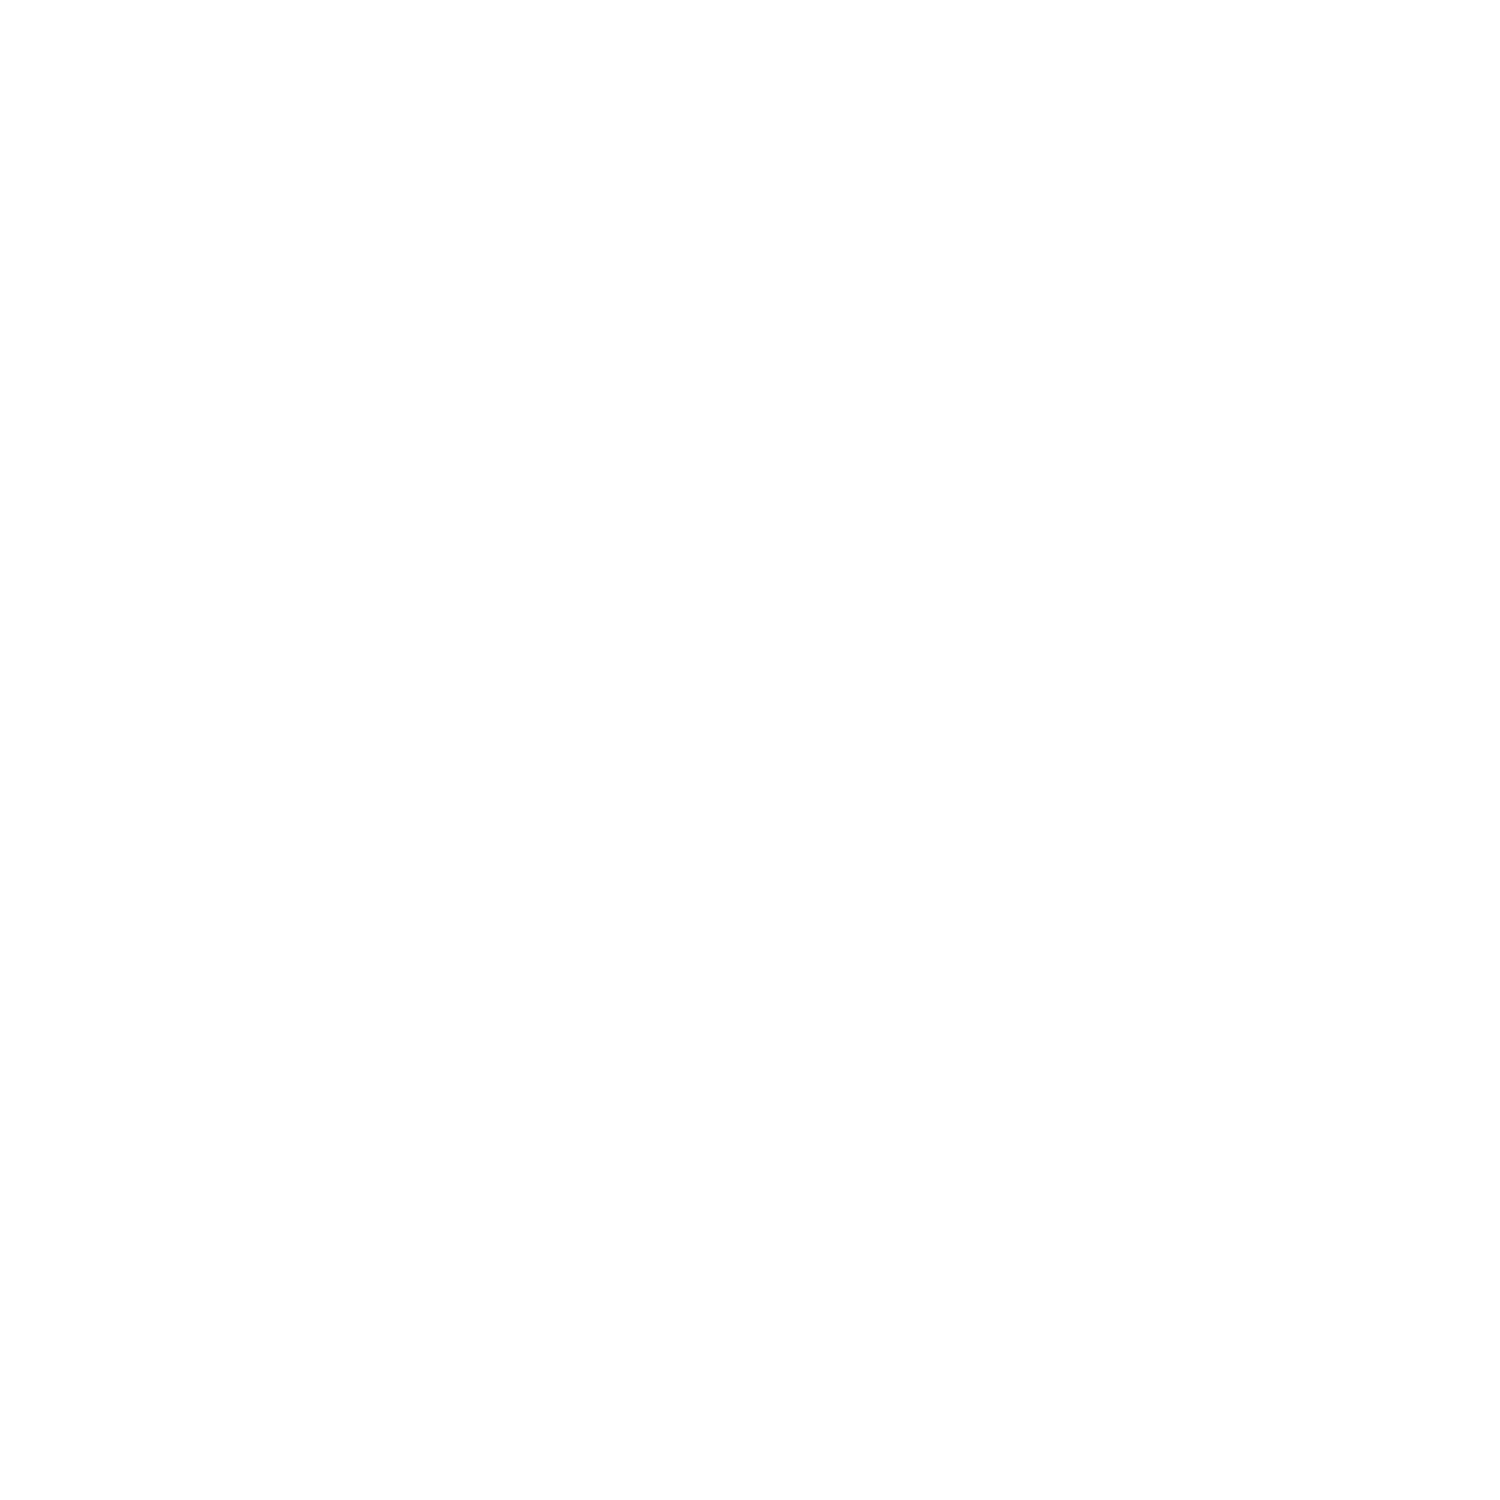 Nolan Catholic High School